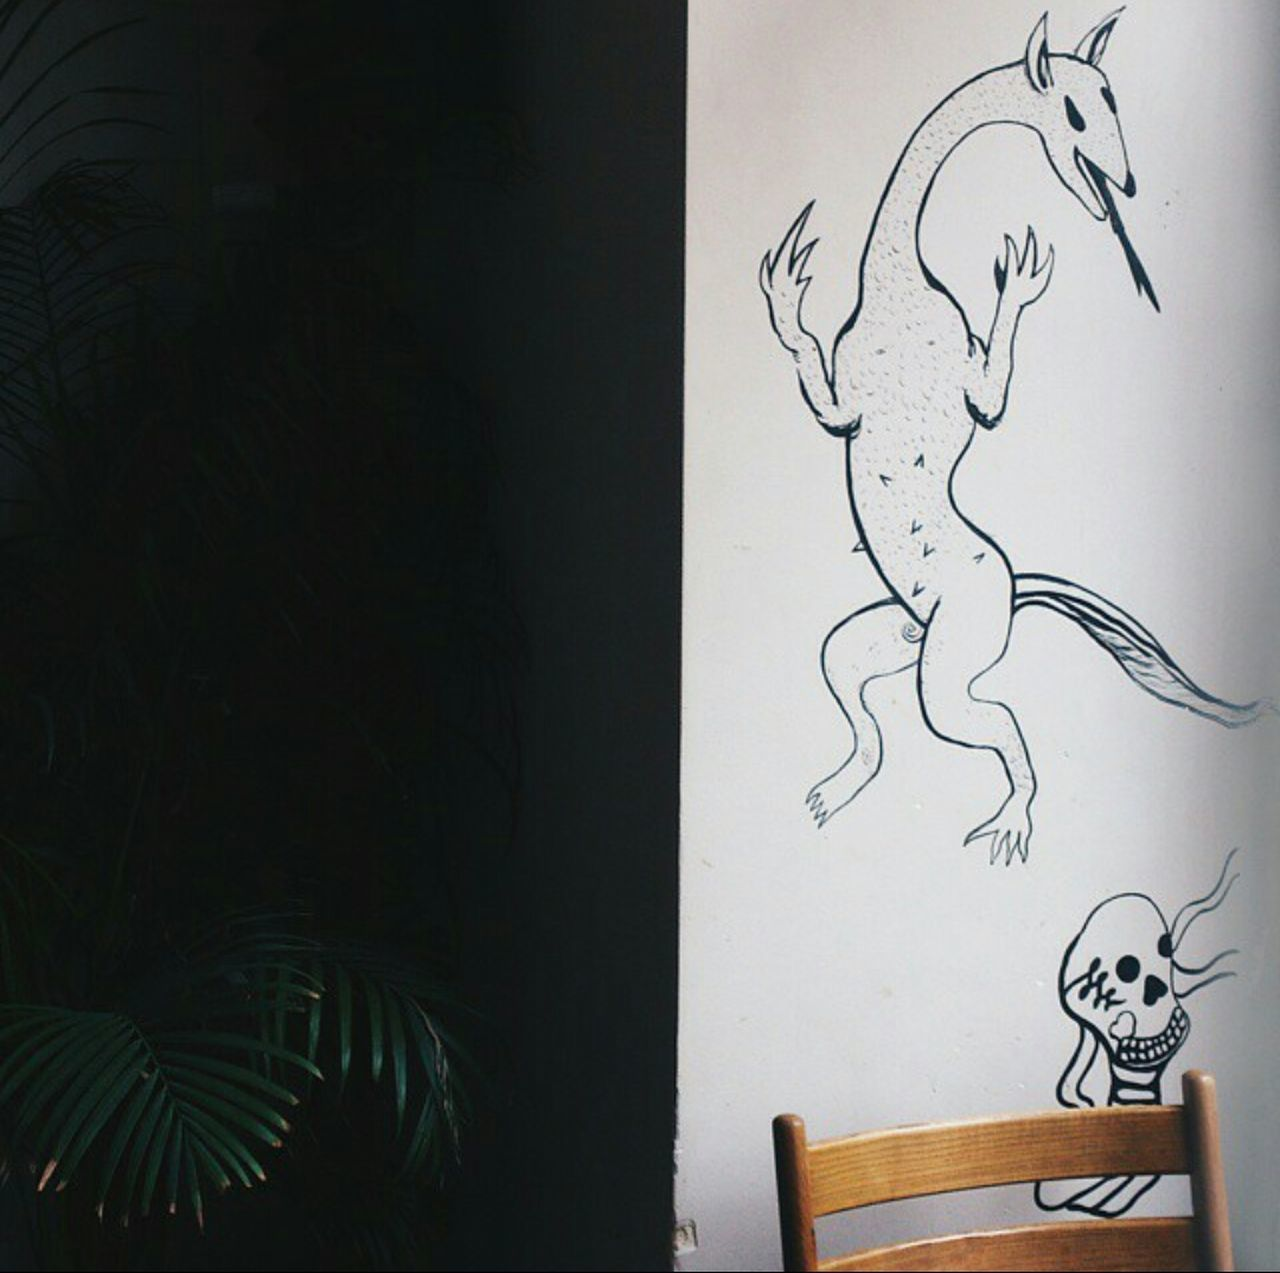 Skull illustration Indoors  Drawing - Art Product No People Home Interior Tree Close-up Day Interior Design Sketch Skull Monster Illustration Art Wall Grafitti White Green Wood Black Paint Painting Cafe Palm Contrast